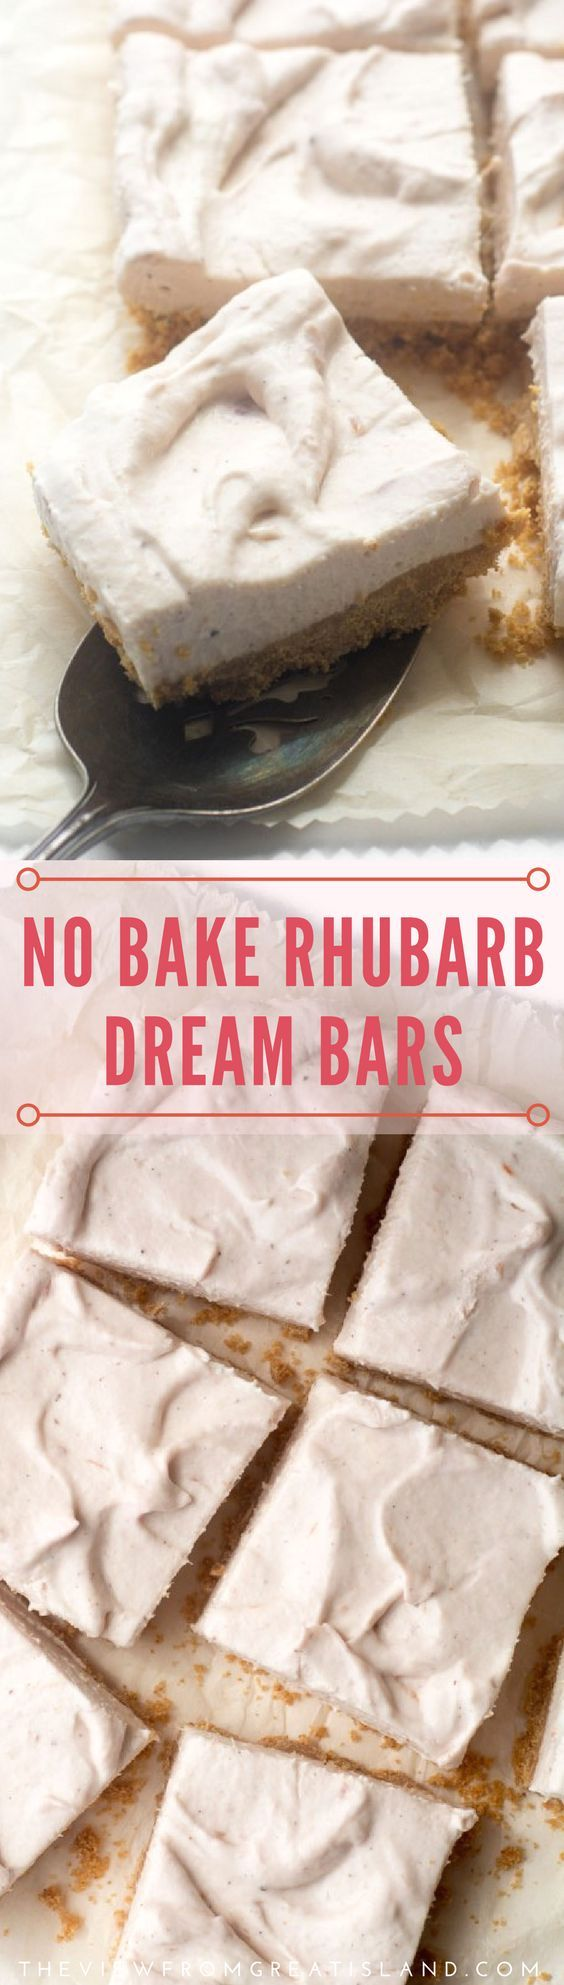 No Bake Rhubarb Dream Bars are light as air treats flushed with a hint of pink from the season's first rhubarb. Eat them chilled, or frozen, it's all good. #rhubarb #rhubarbrecipe #nobakedessert #nobake #springdessert #dessertbars #rhubarbbars #springdessert